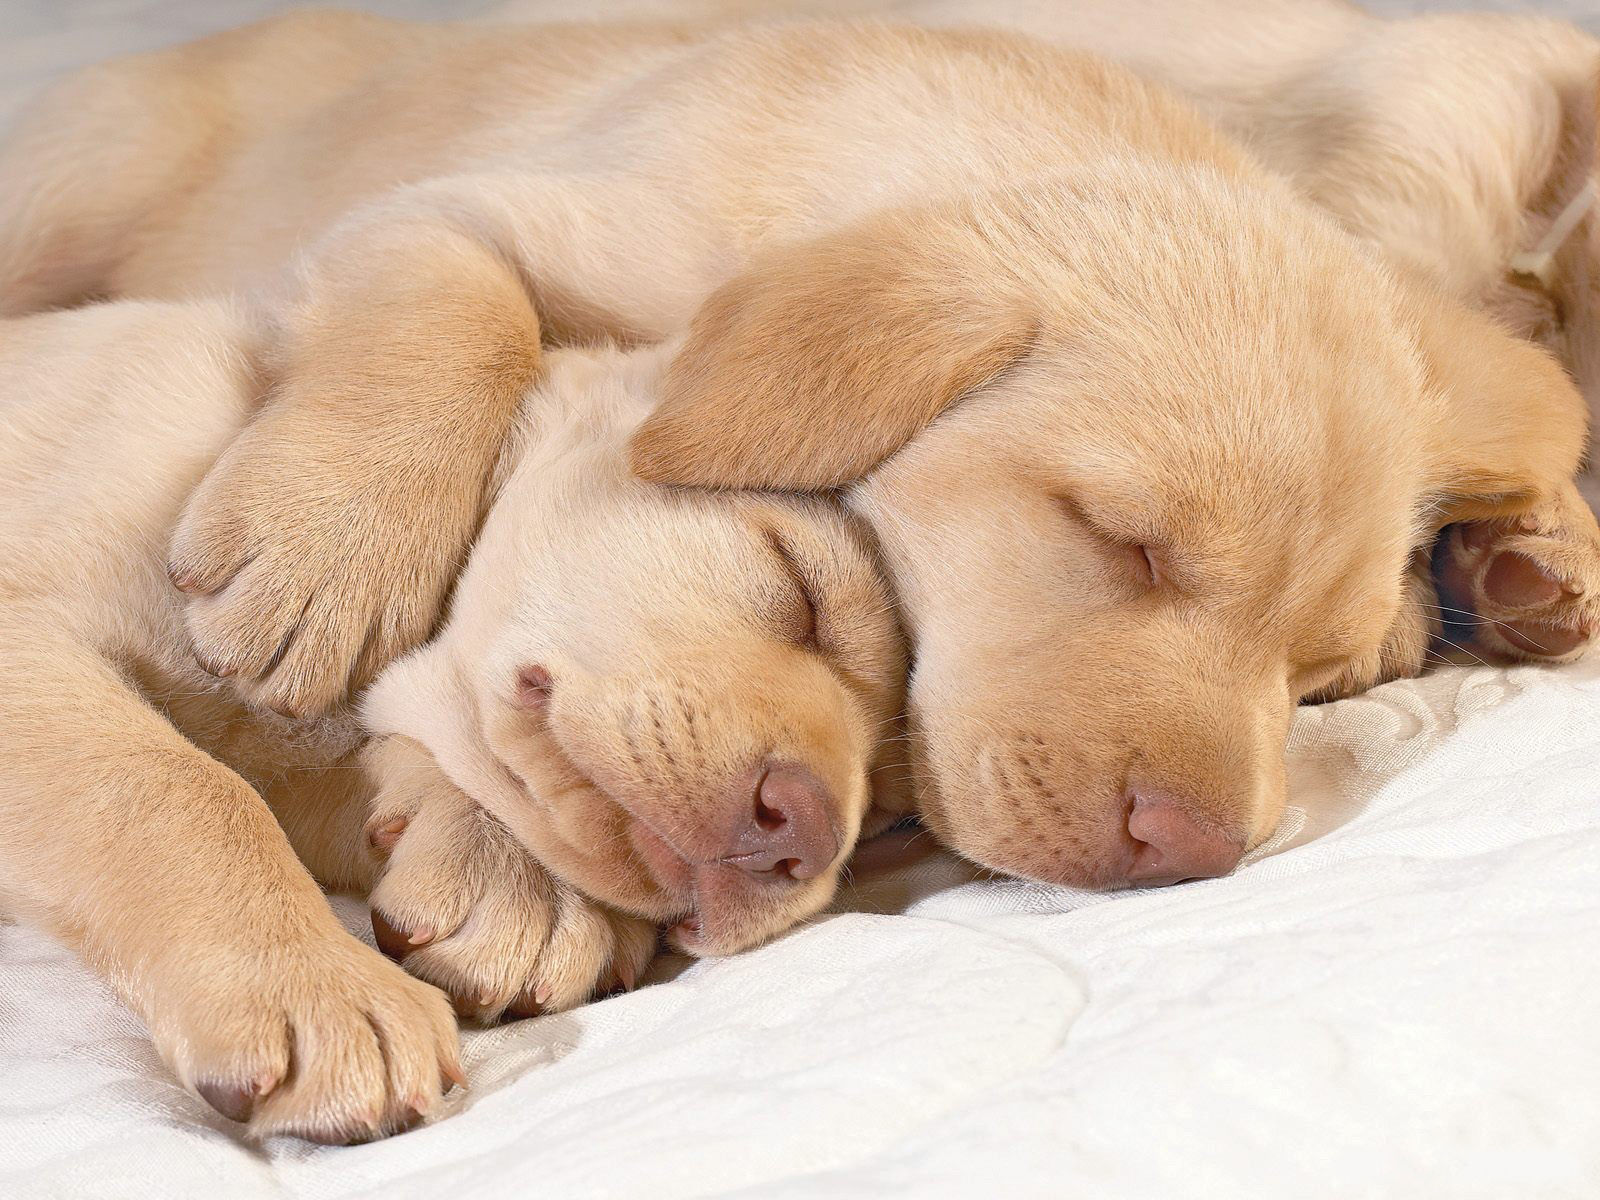 Puppies images Cute puppies in hug wallpaper photos 14748941 1600x1200